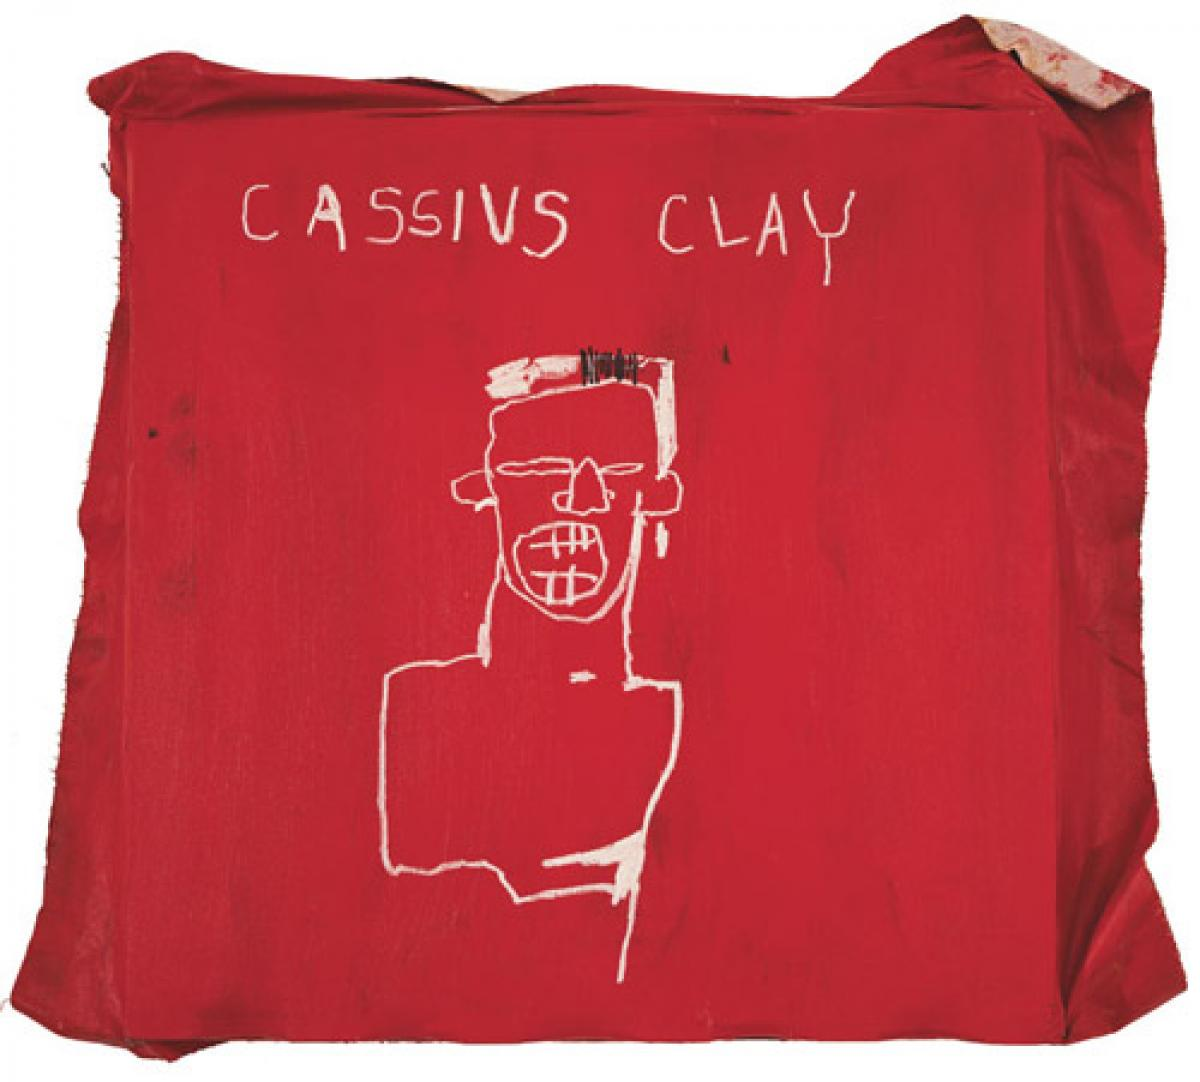 Cassius Clay by Jean-Michel Basquiat The Mantle